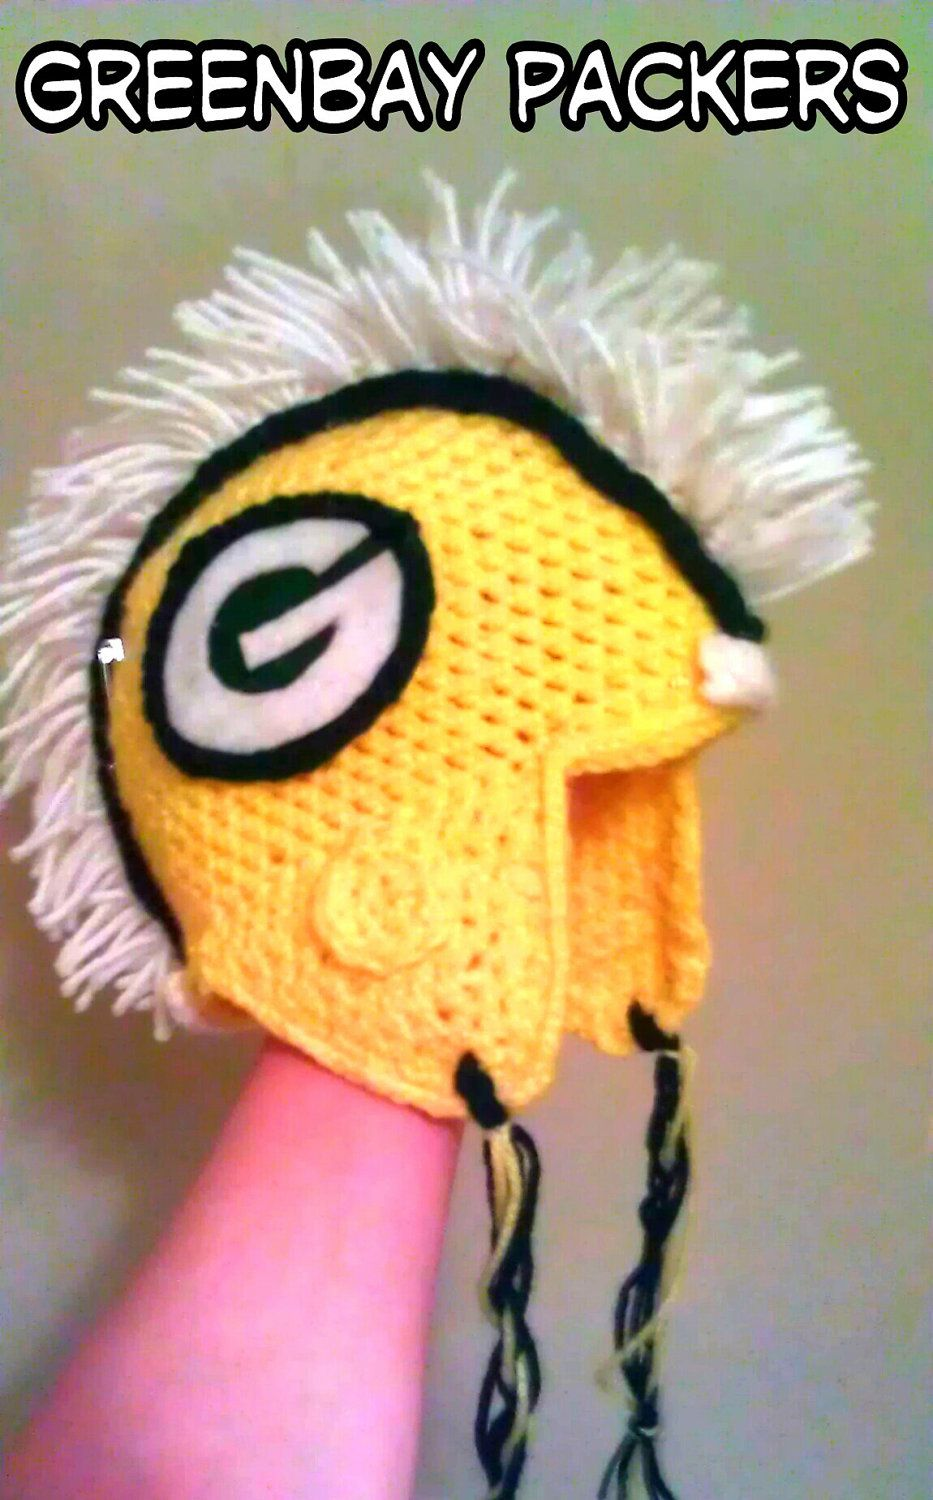 Helmet mohawk beanie of your favorite nfl team greenbay packers